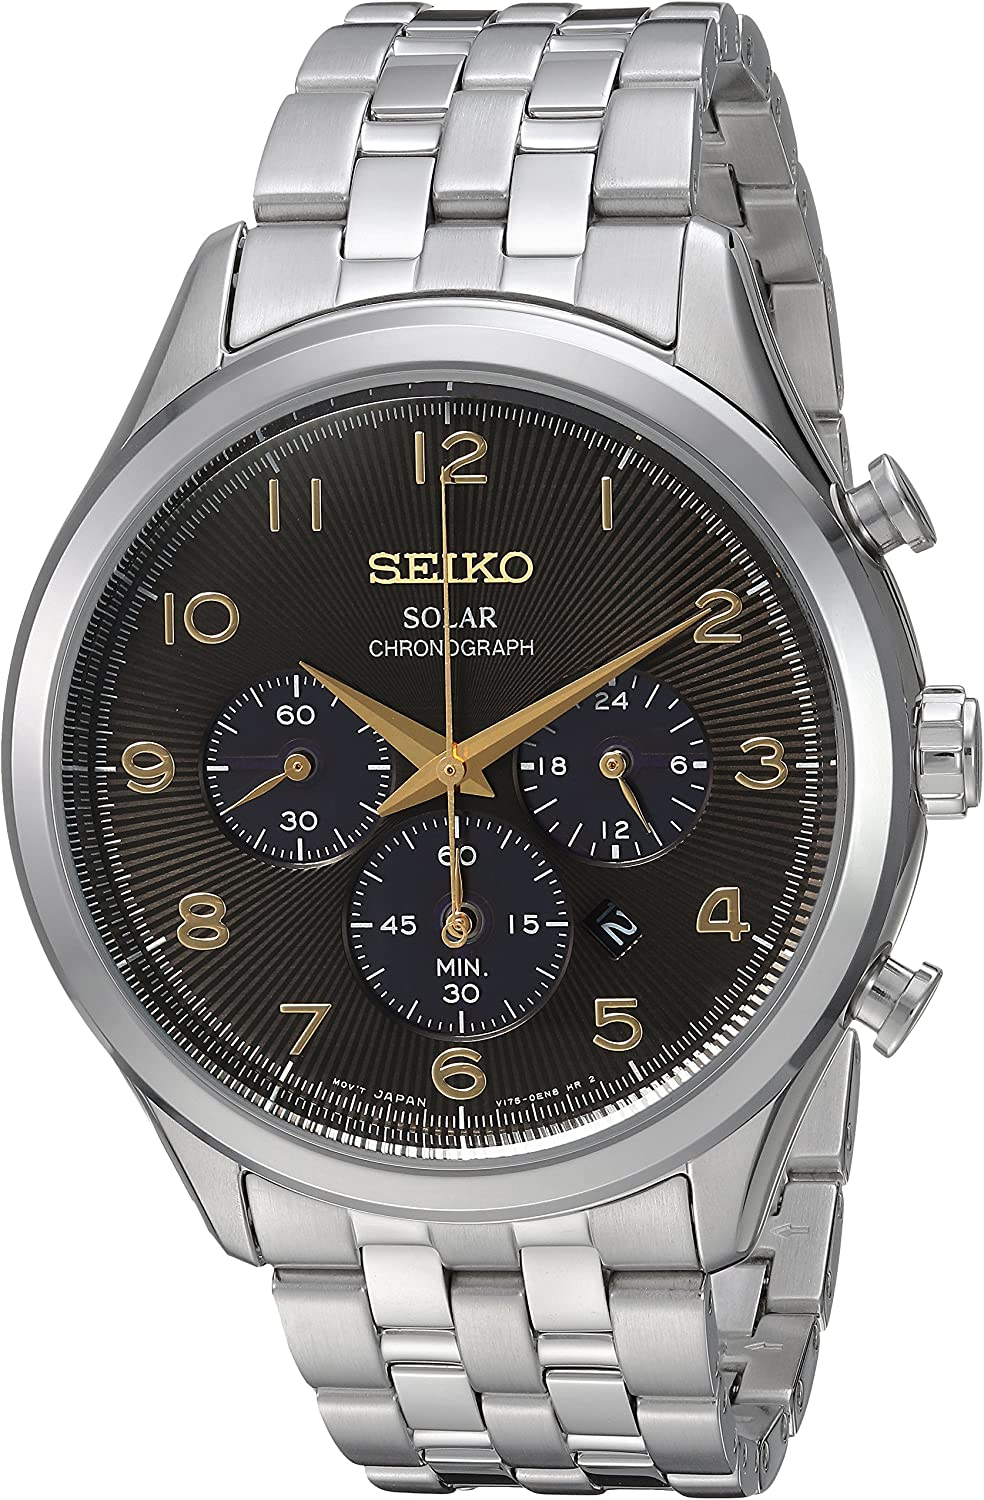 Seiko Mens Solar Chronograph Stainless Steel Japanese-Quartz Watch with Stainless-Steel Strap, Silver, 20 (Model: SSC563)